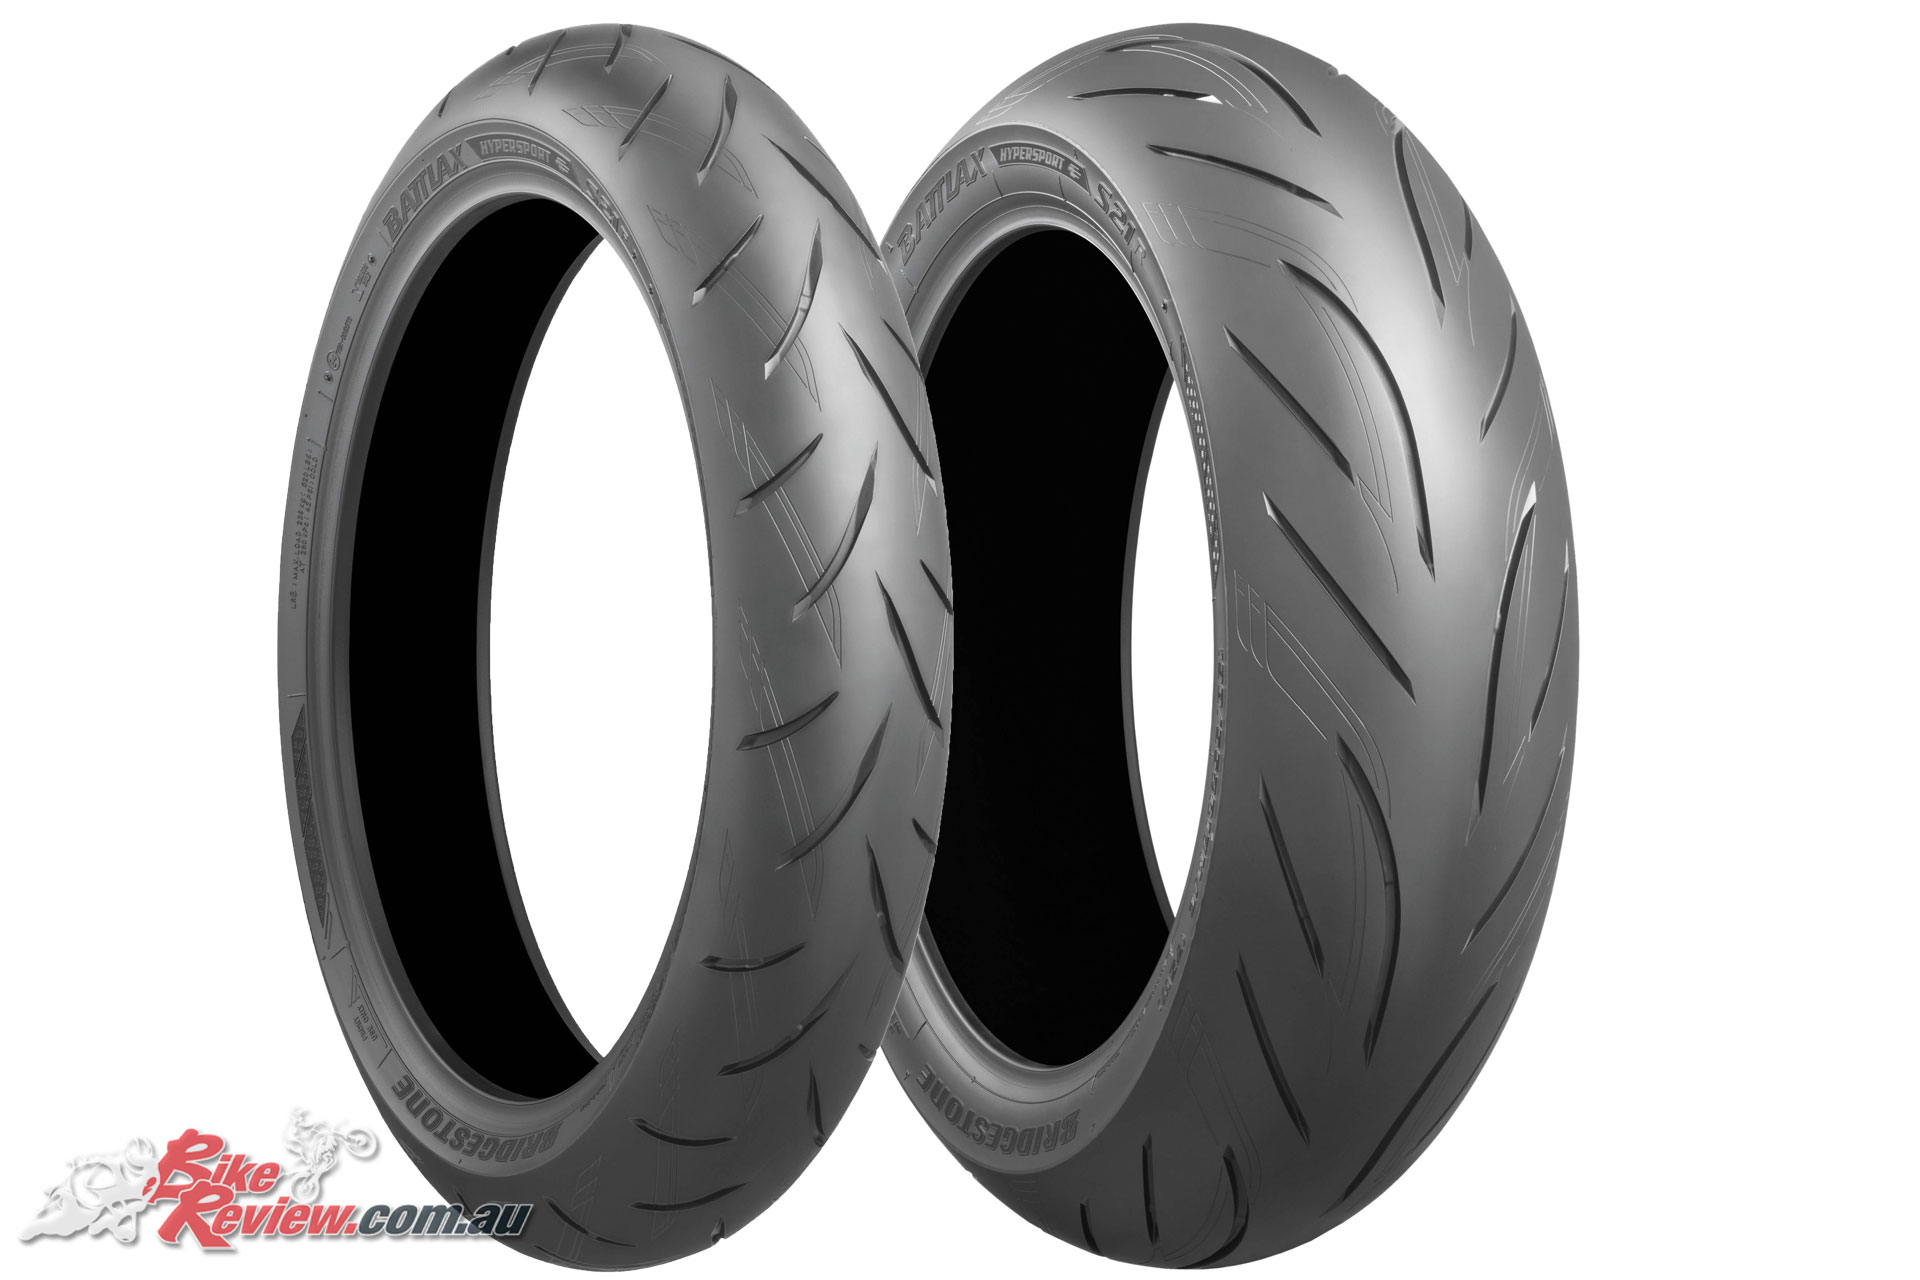 The Bridgestone Battlax S21 front and rear are available in 10 sizes, four front, six rear, see below for the chart and pricing